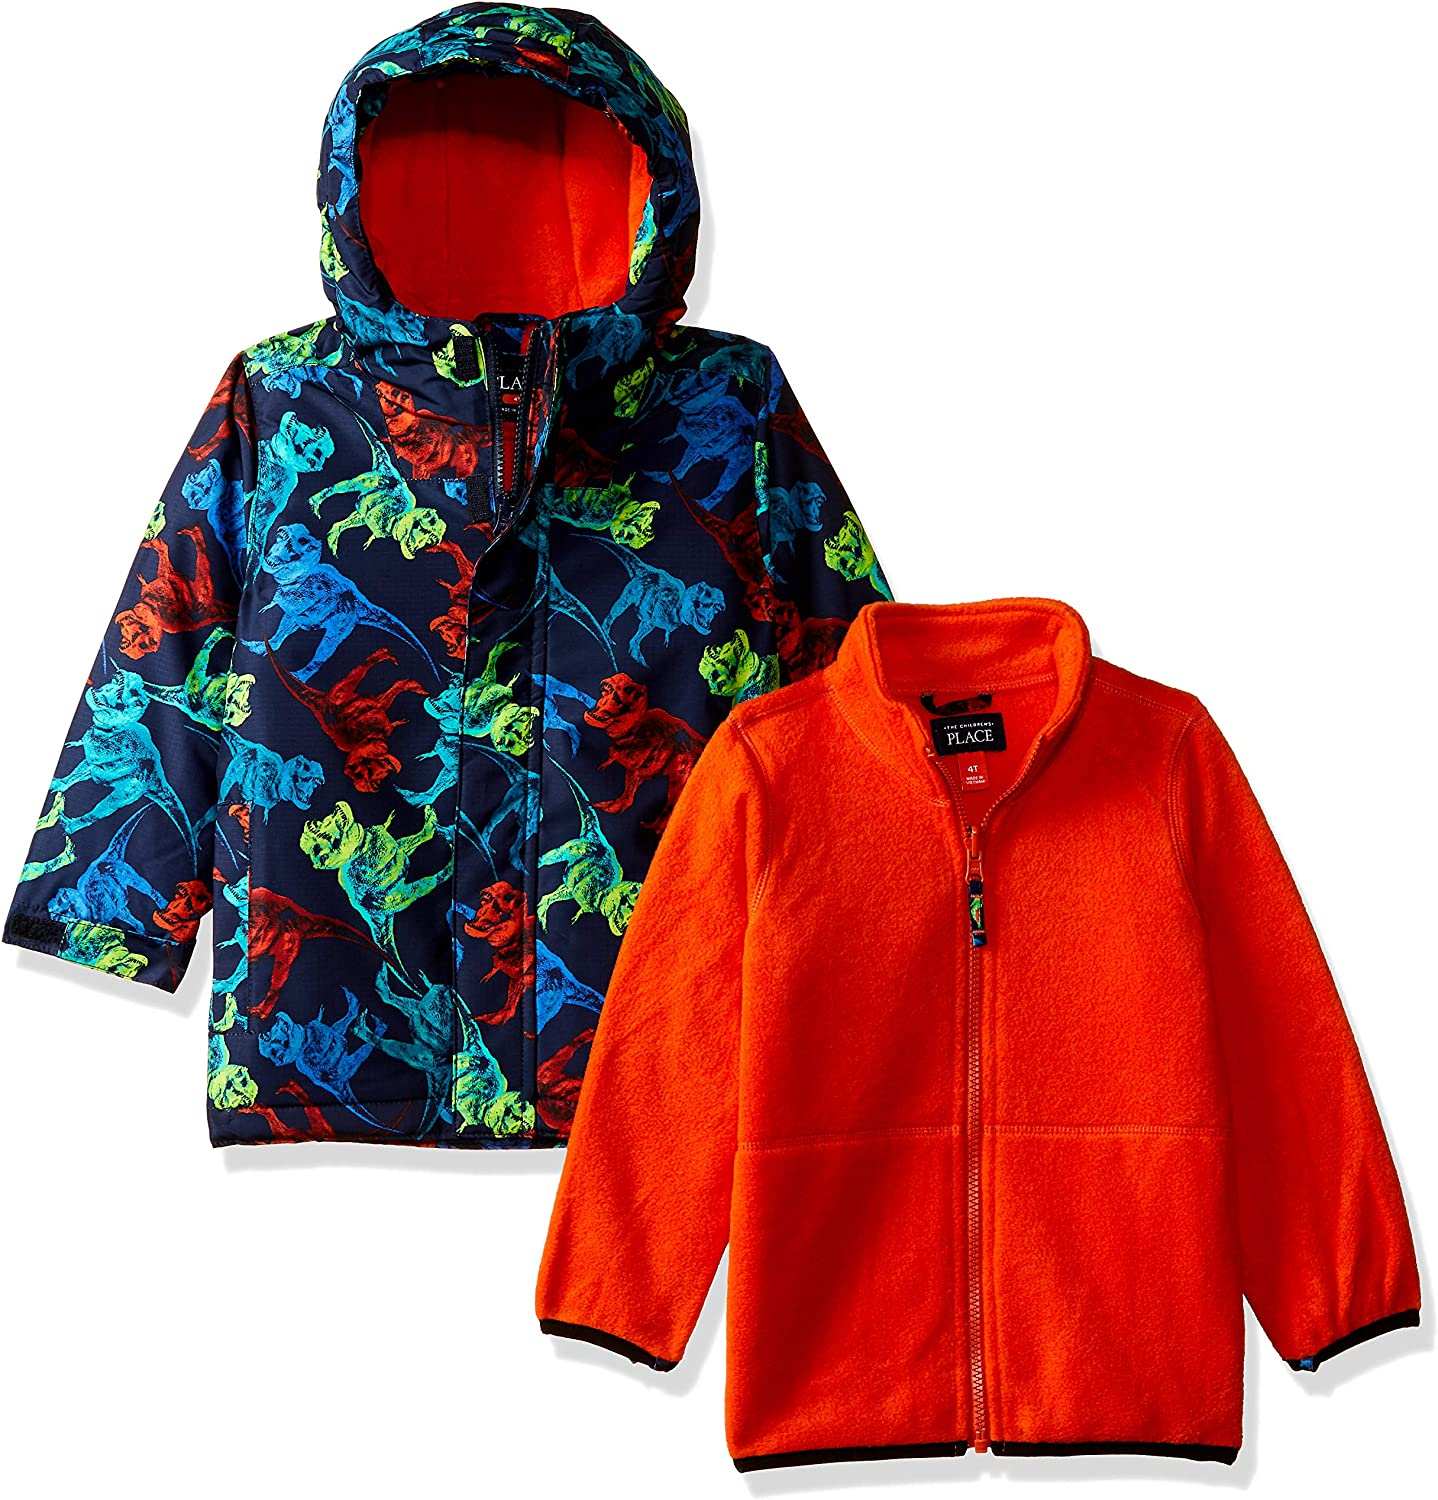 The Children's Place Toddler Boys' Print 1 Cheap sale Same day shipping Jacket 3 In